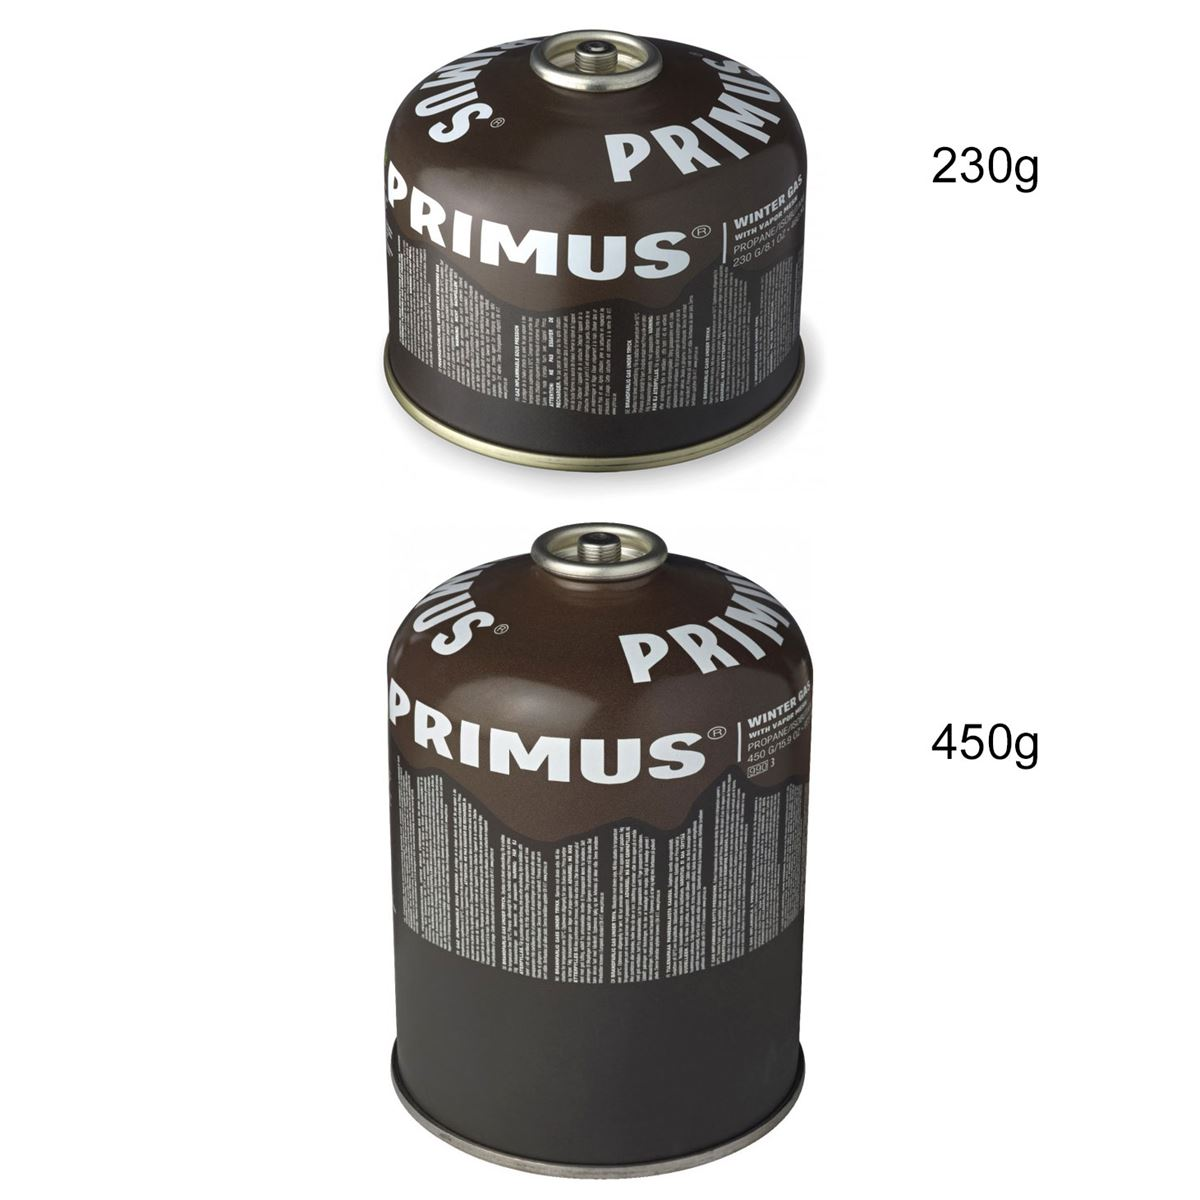 Primus Winter Gas Screw Threaded Cylinder Not To Be